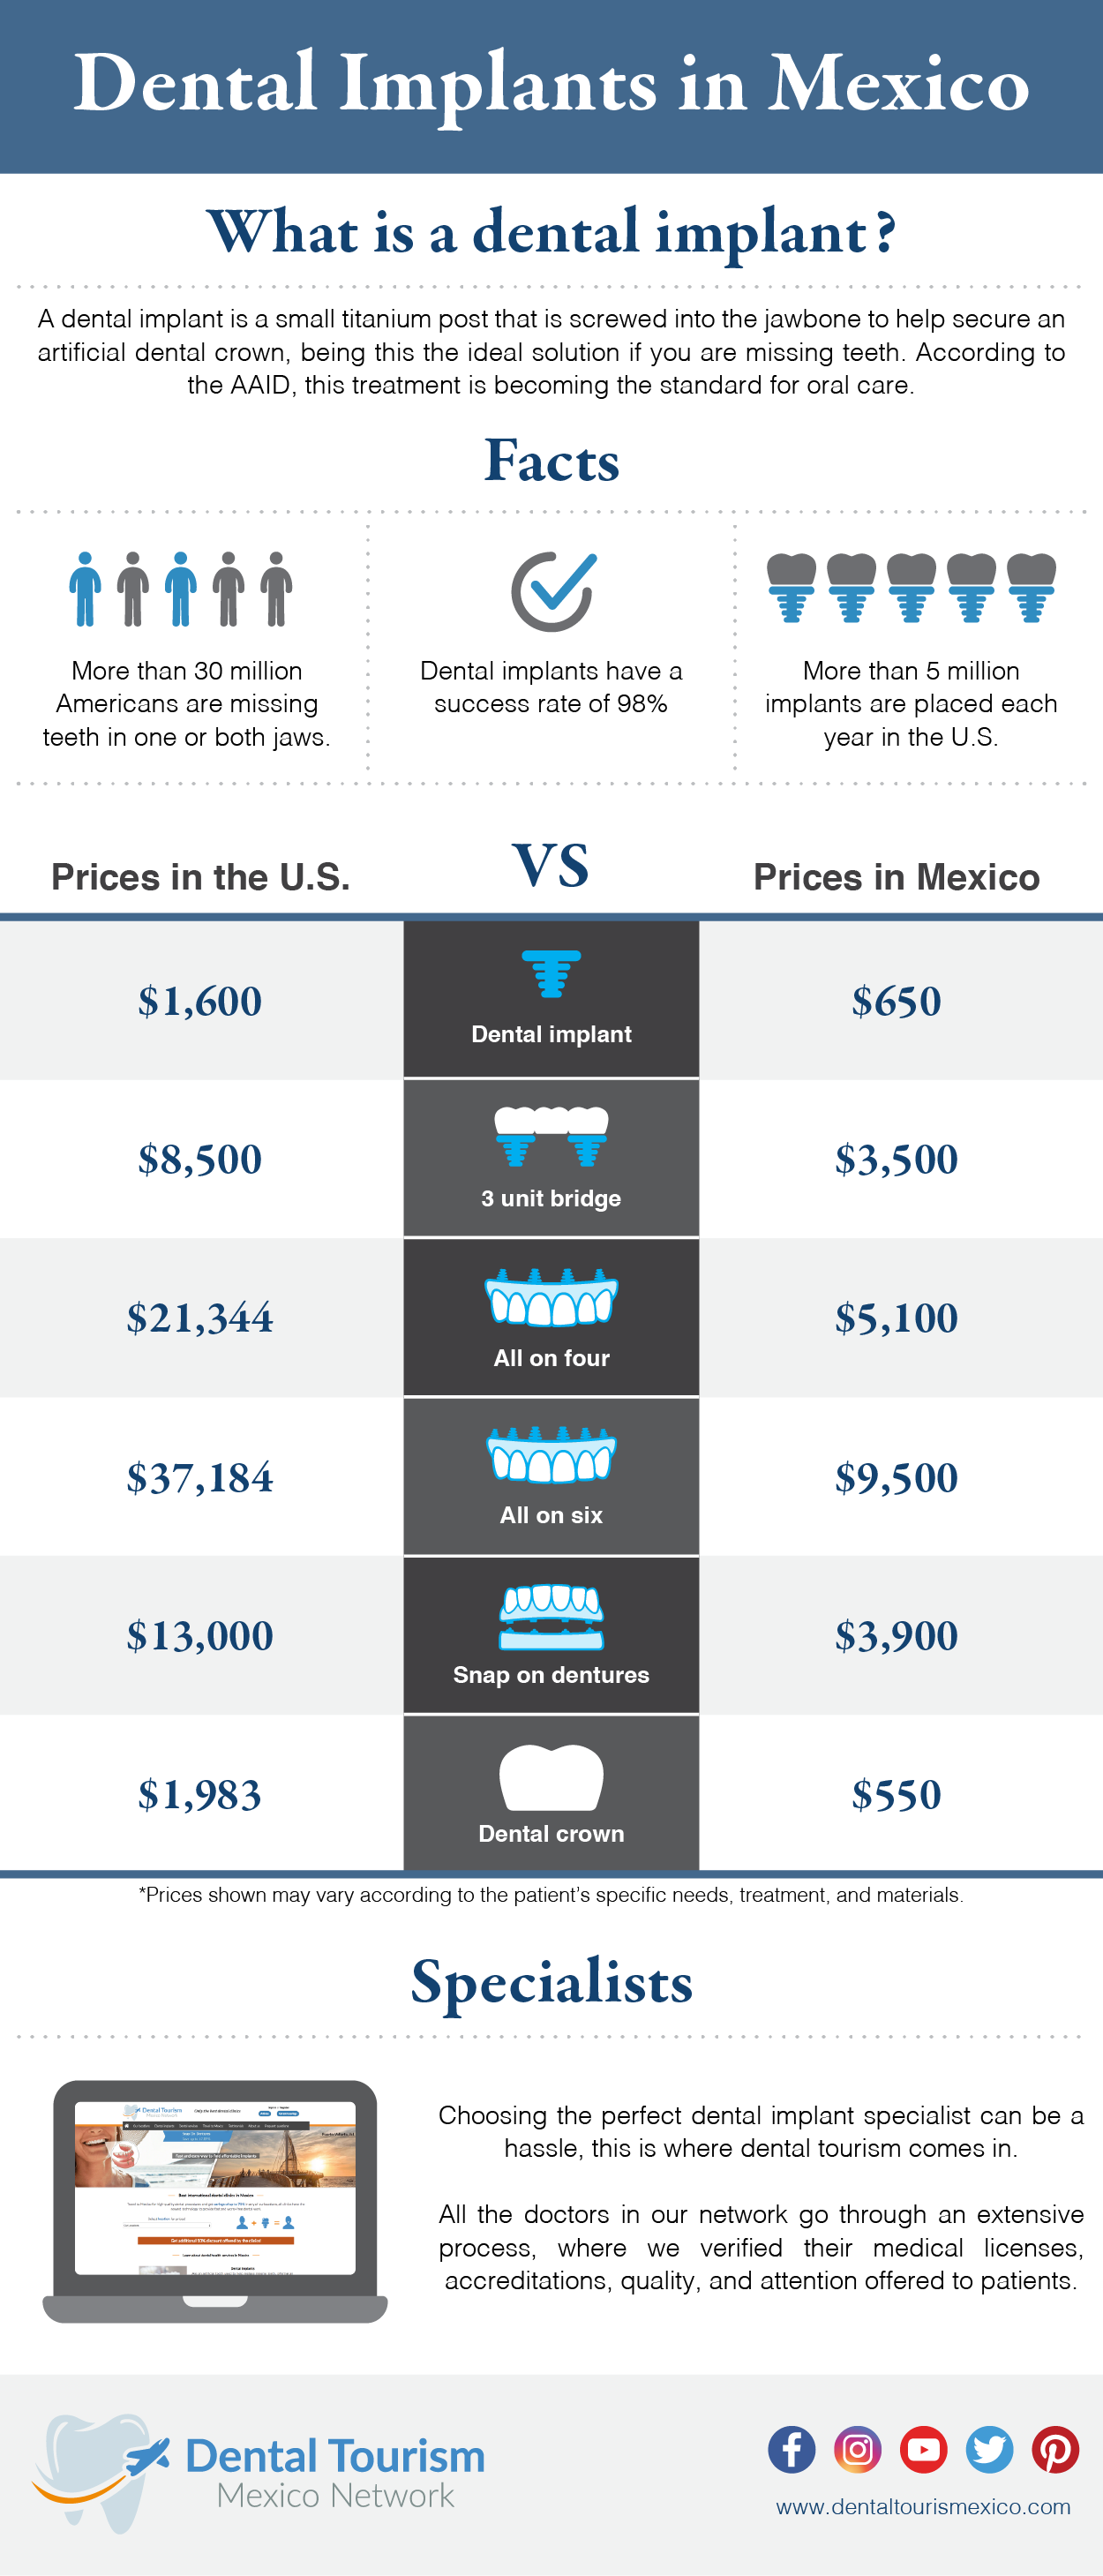 Prices comparison of dental implants in Mexico